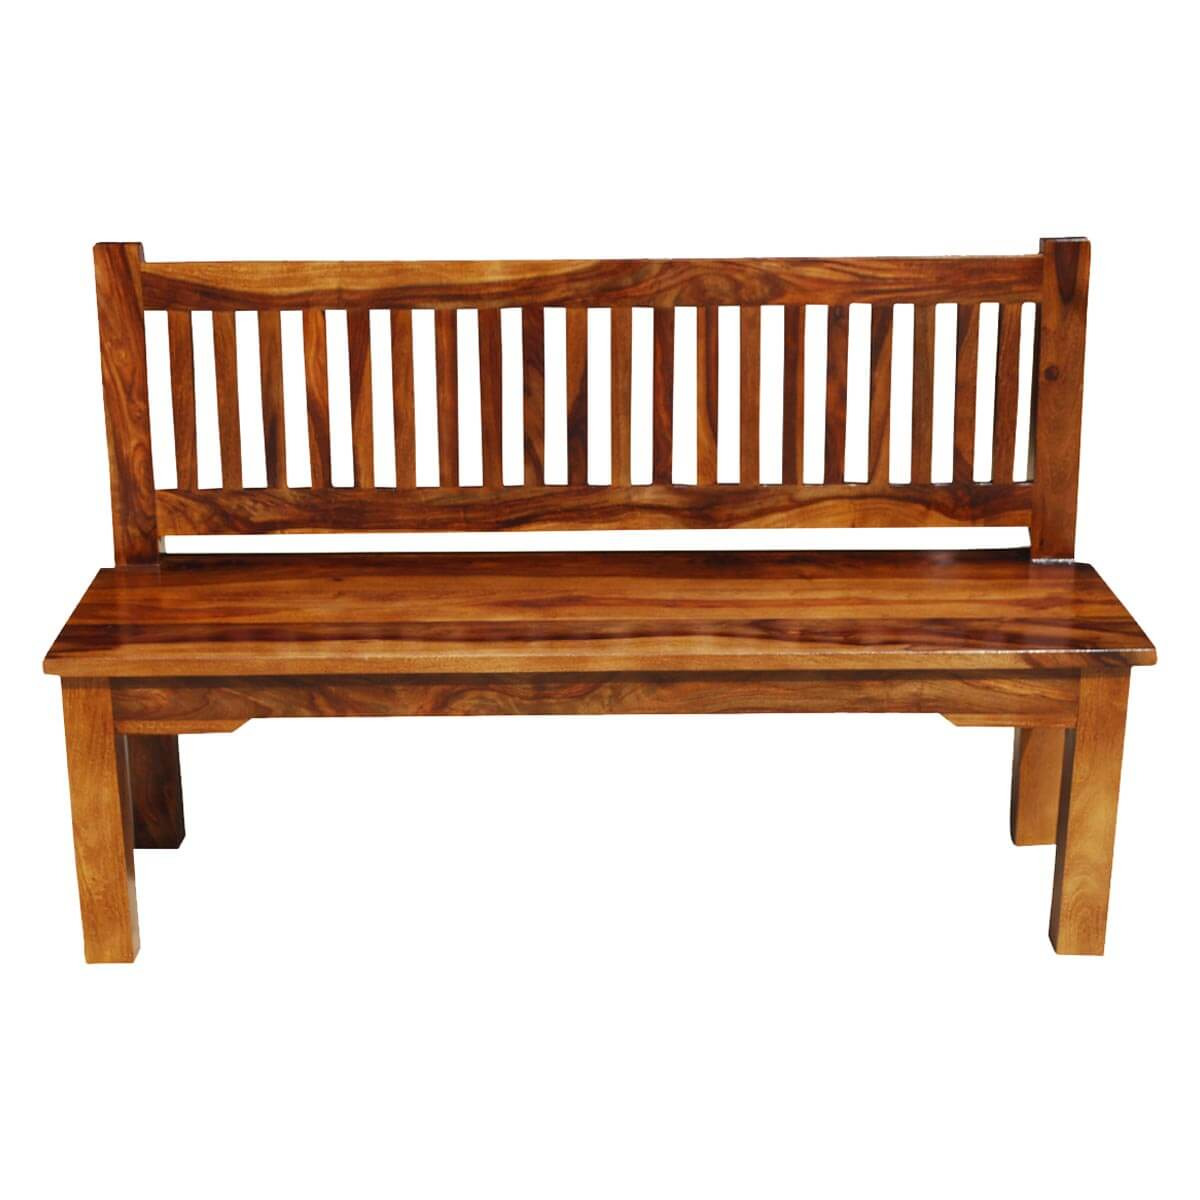 #AD5117  New Arrivals Santa Cruz Mission Solid Wood Rustic 57 Bench W Back with 1200x1200 px of Highly Rated High Back Wooden Bench 12001200 picture/photo @ avoidforclosure.info